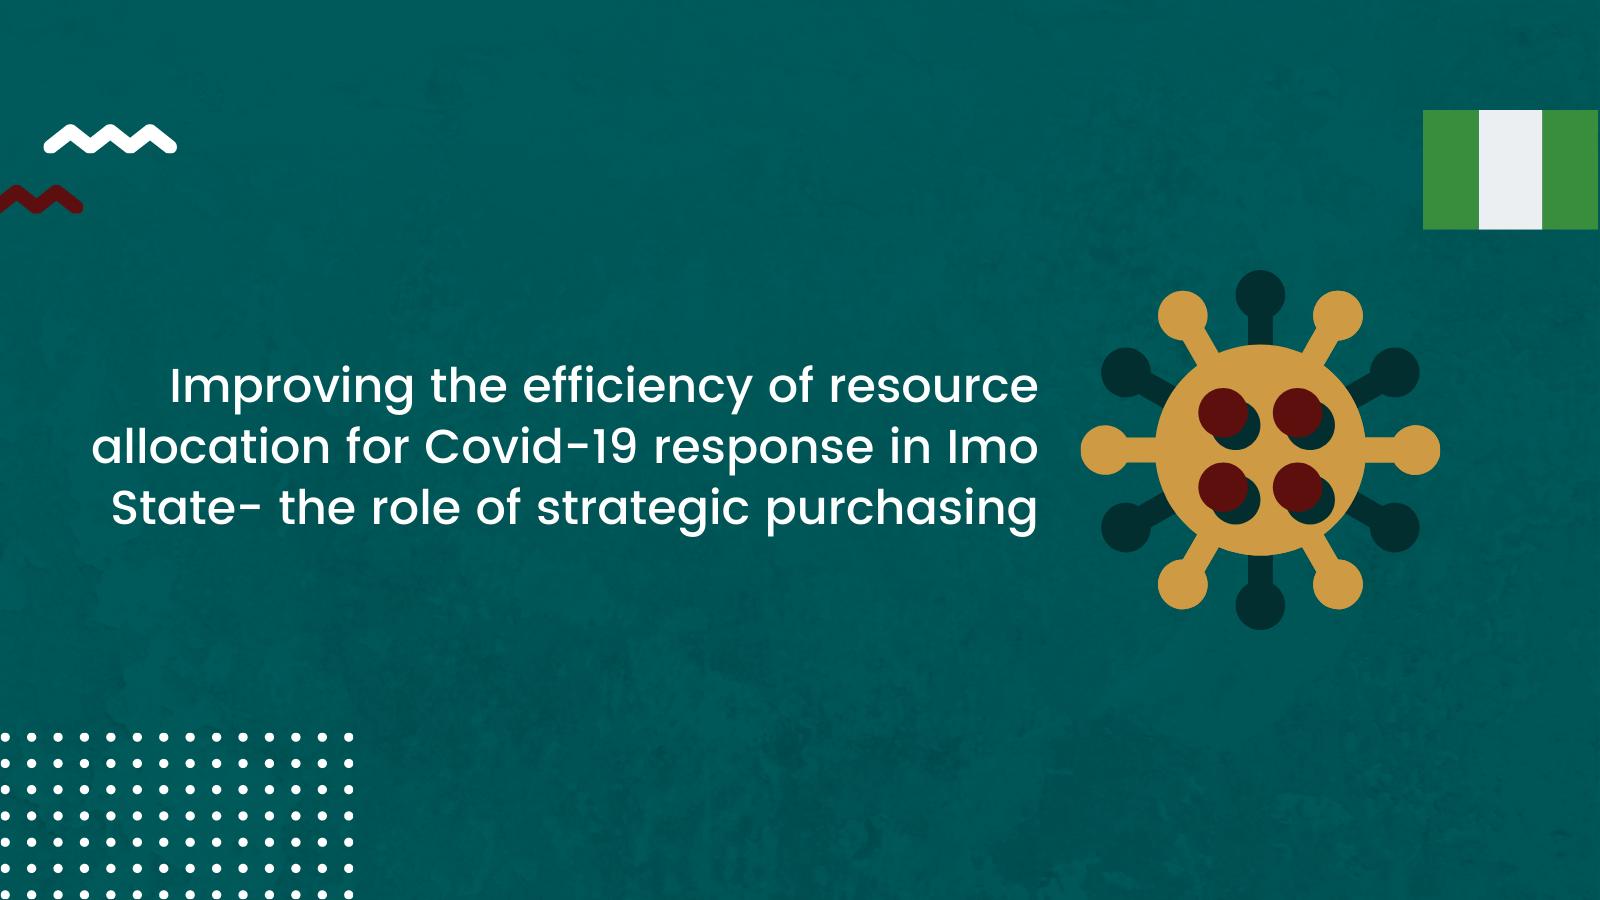 Improving the Efficiency of Resource Allocation for Covid-19 Response in Imo State – The Role of Strategic Purchasing